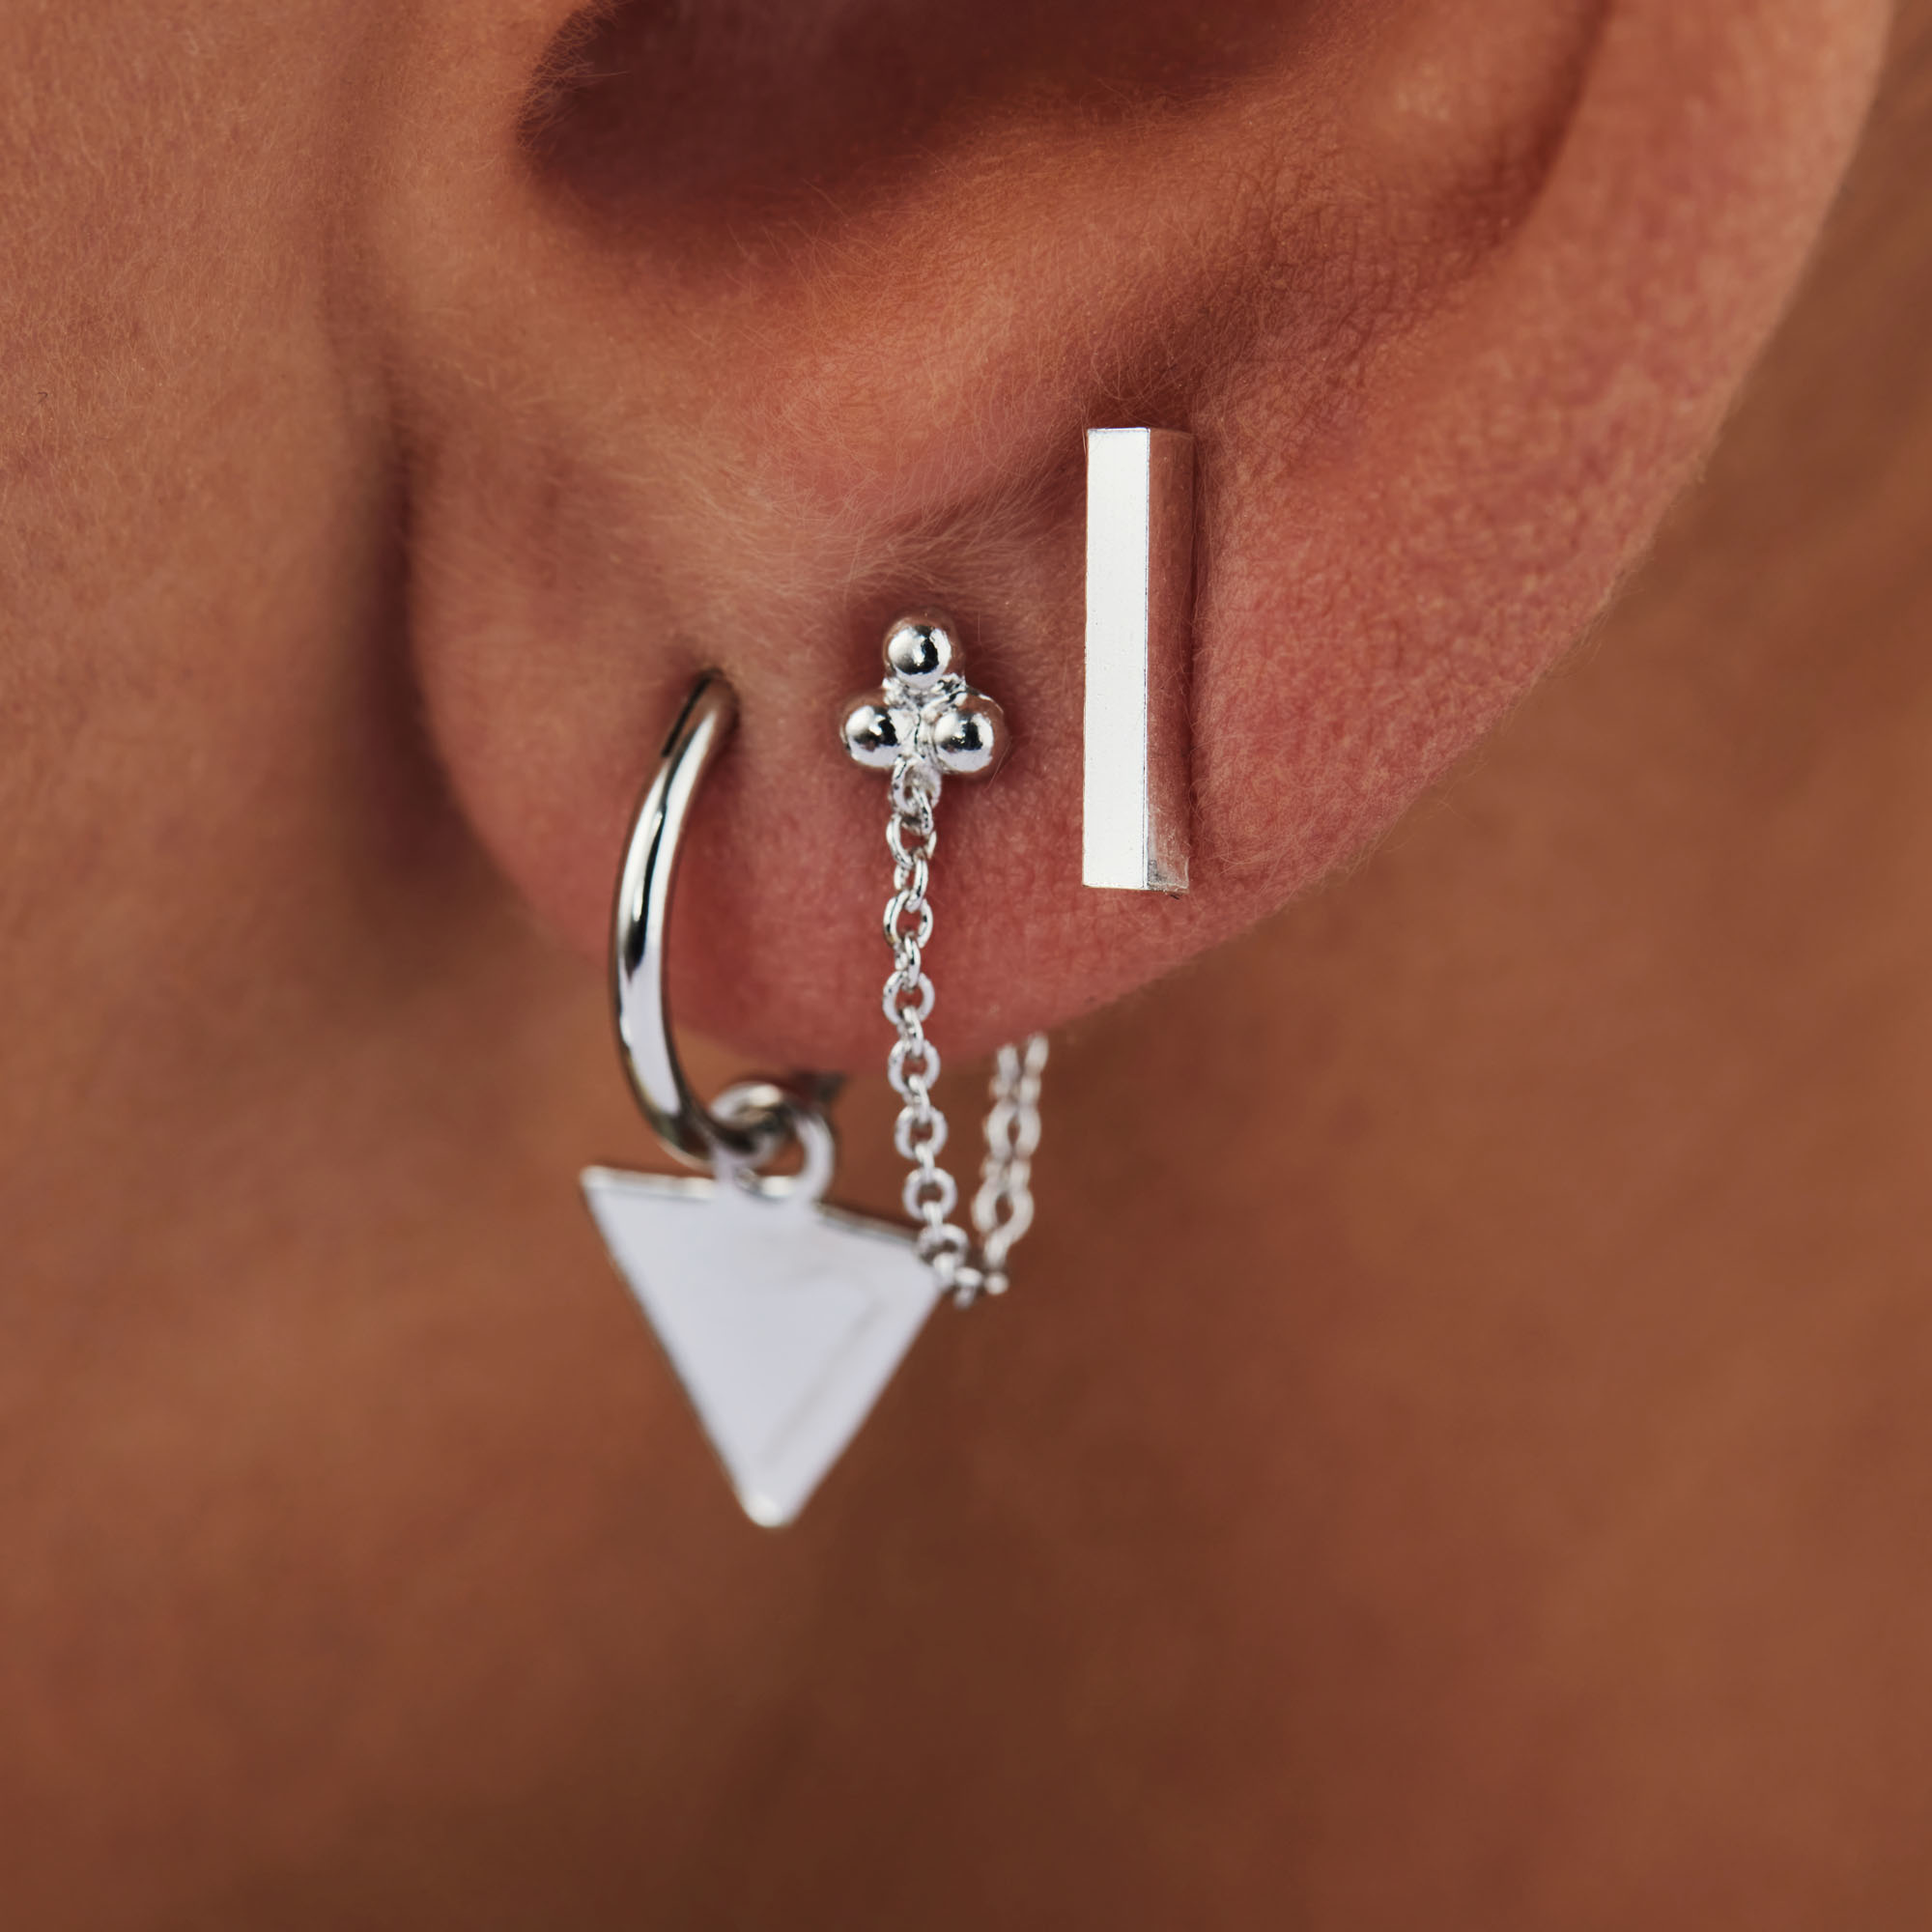 Selected Jewels Julie Charlotte orecchini a bottone in argento sterling 925